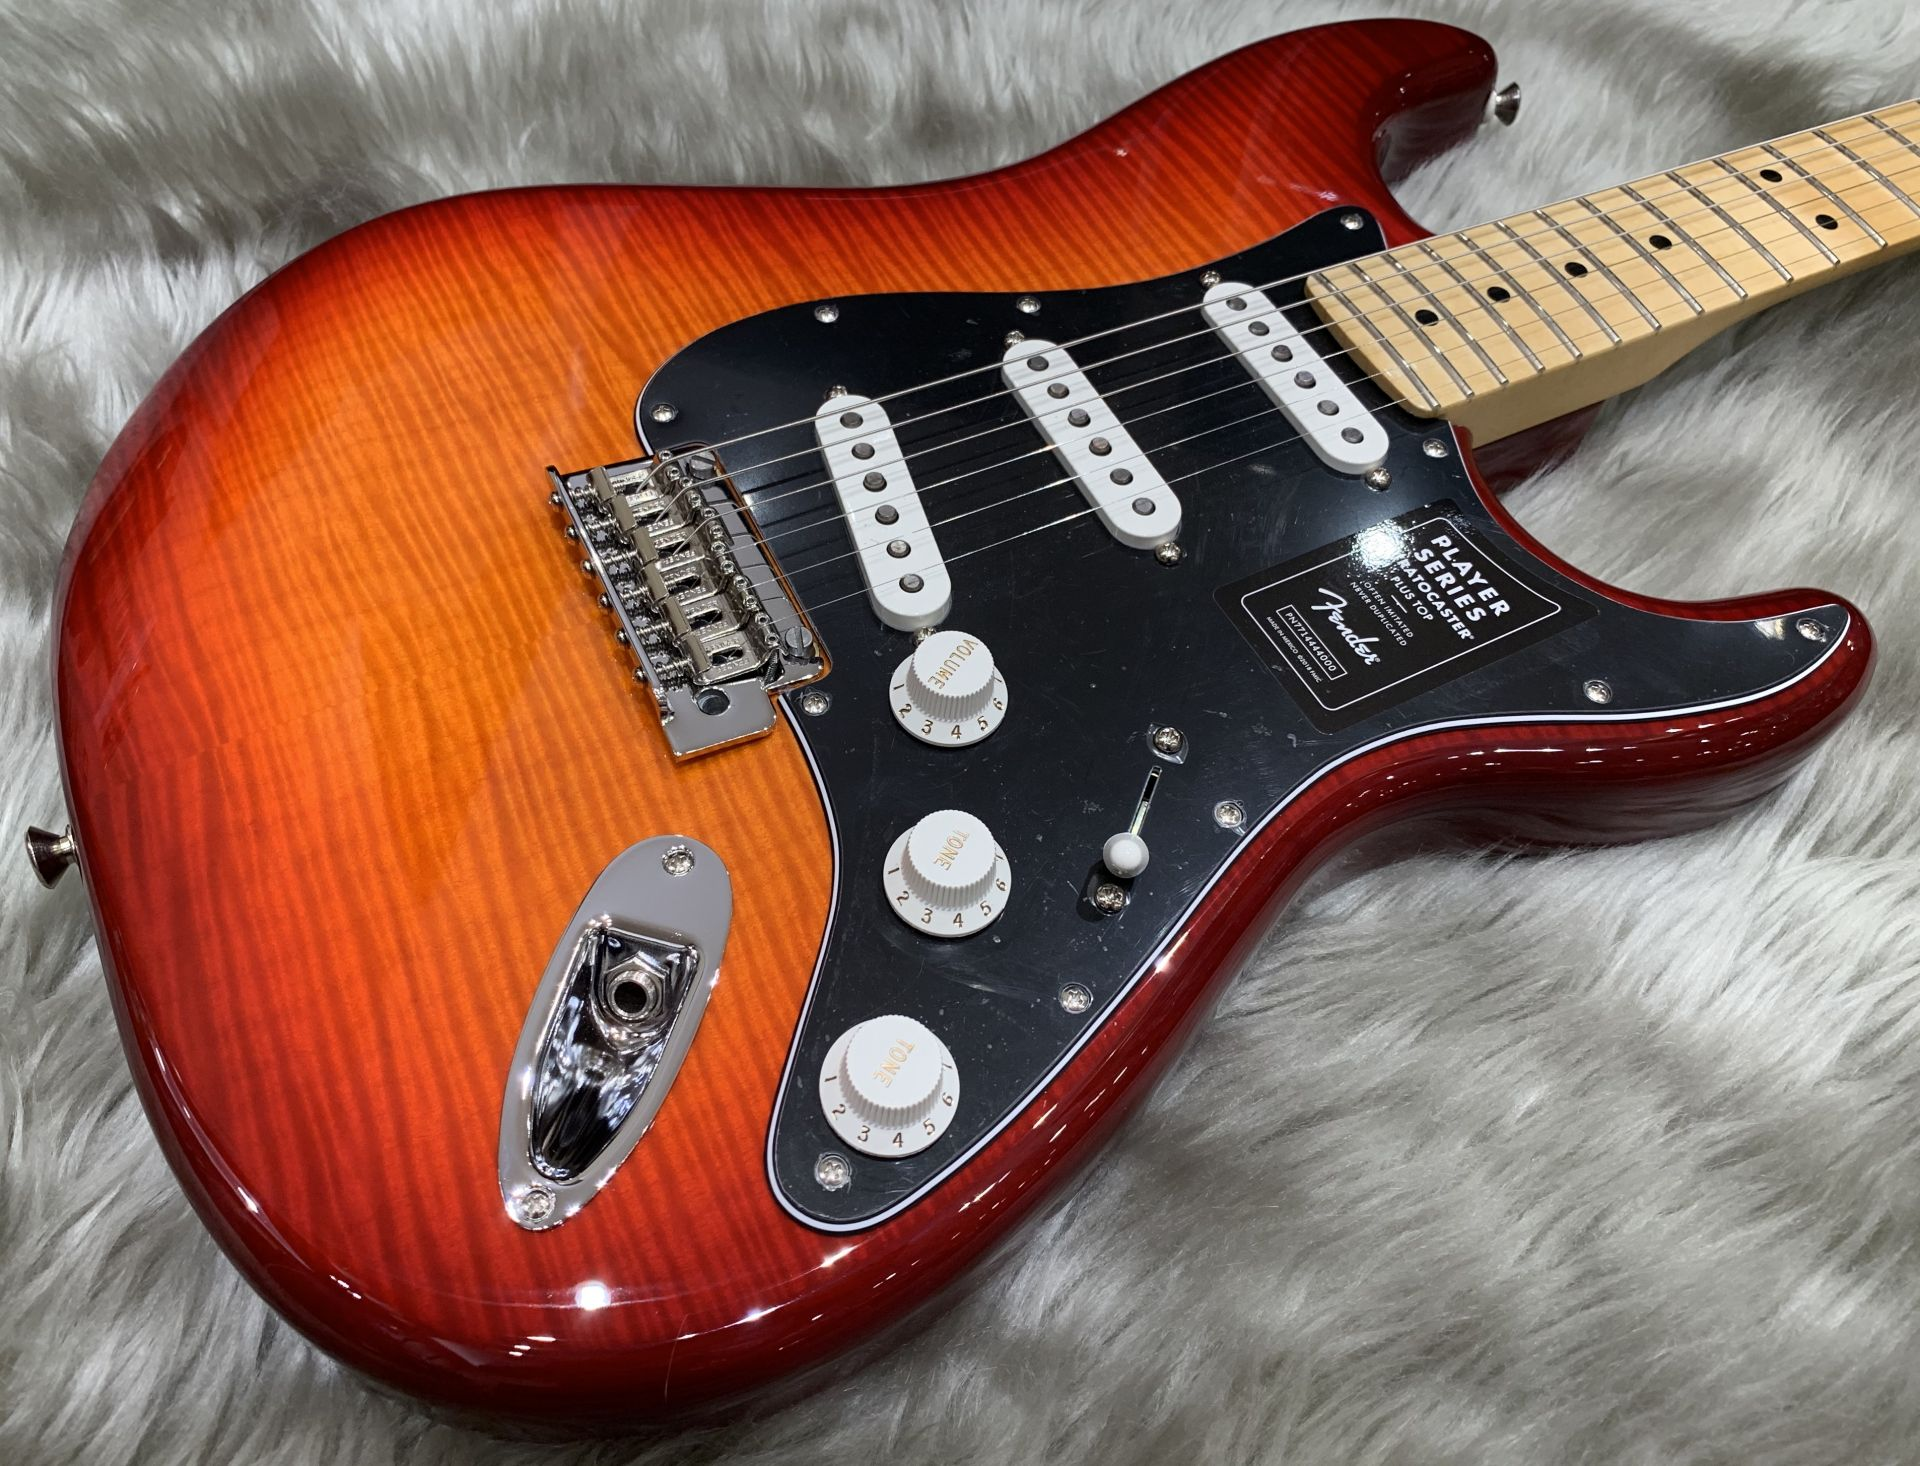 PLAYER STRATOCASTER PLUS TOPのボディトップ-アップ画像